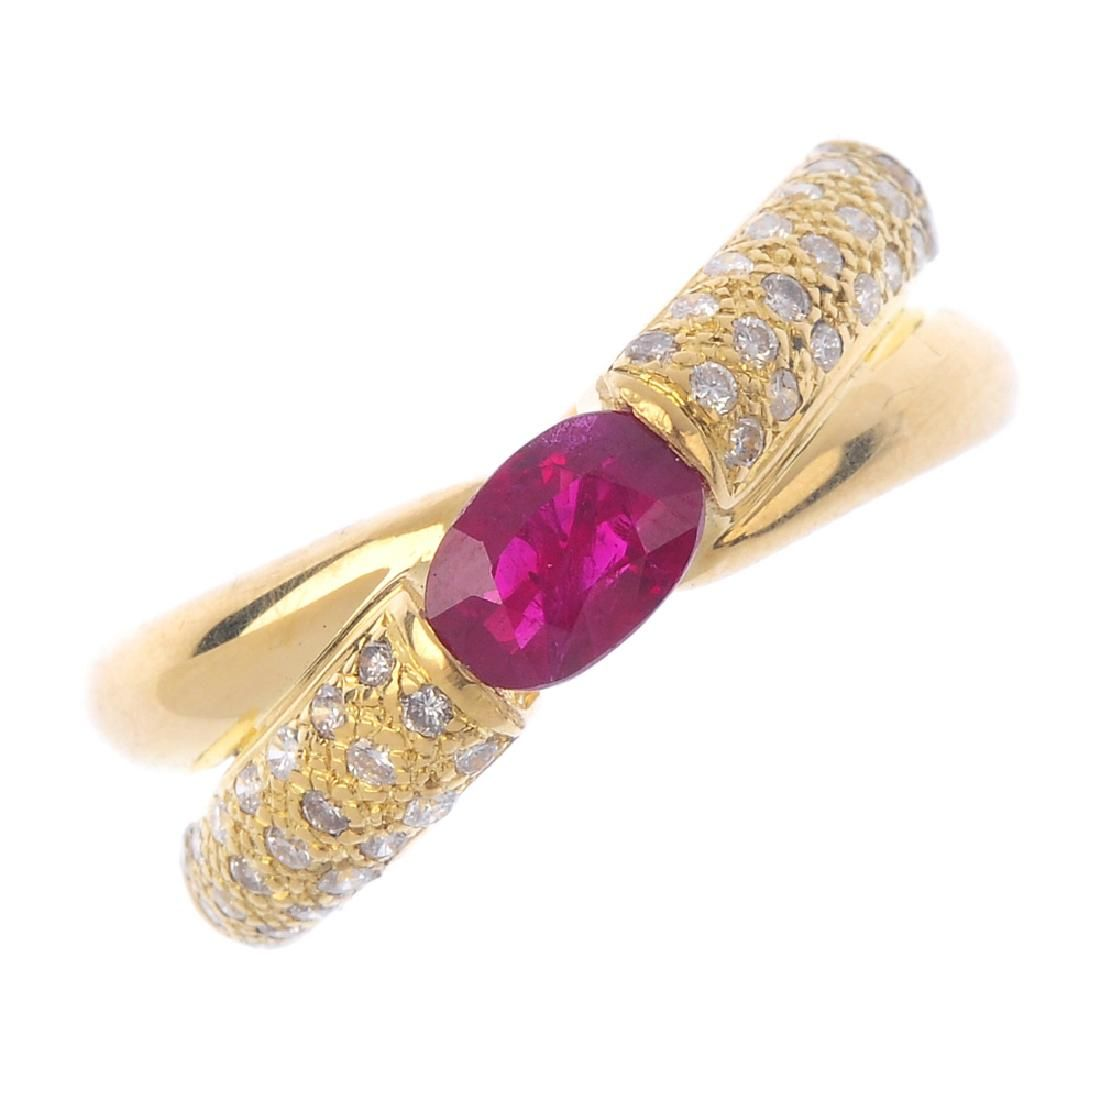 An 18ct gold ruby and diamond ring. The oval-shape